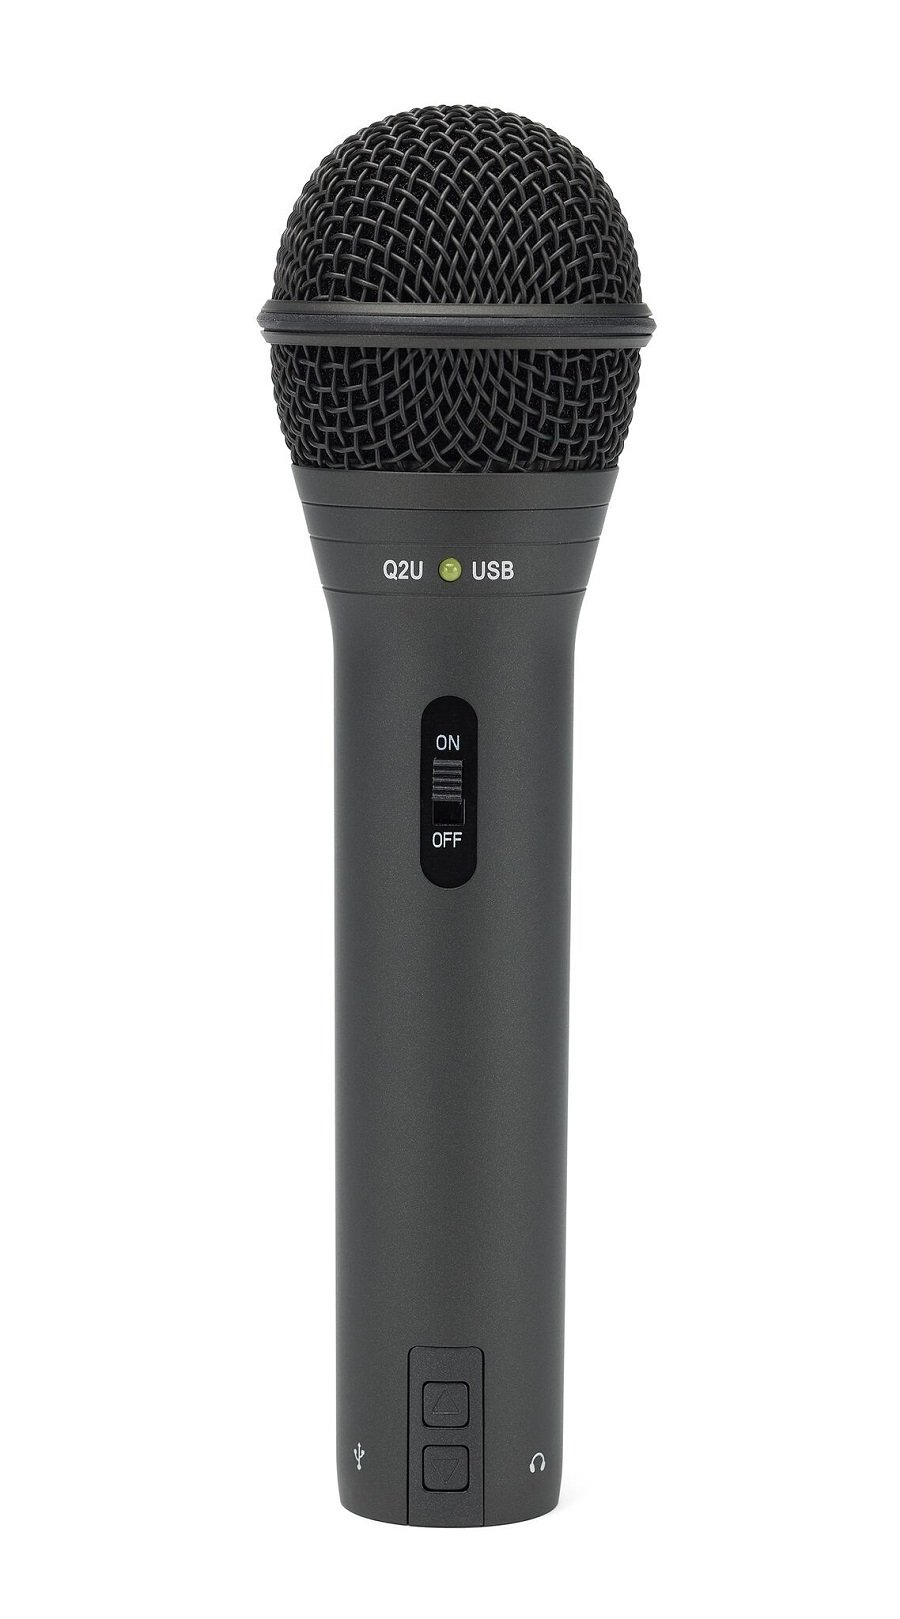 Samson Q2U Handheld Dynamic USB Microphone Recording and Podcasting Pack (Black)